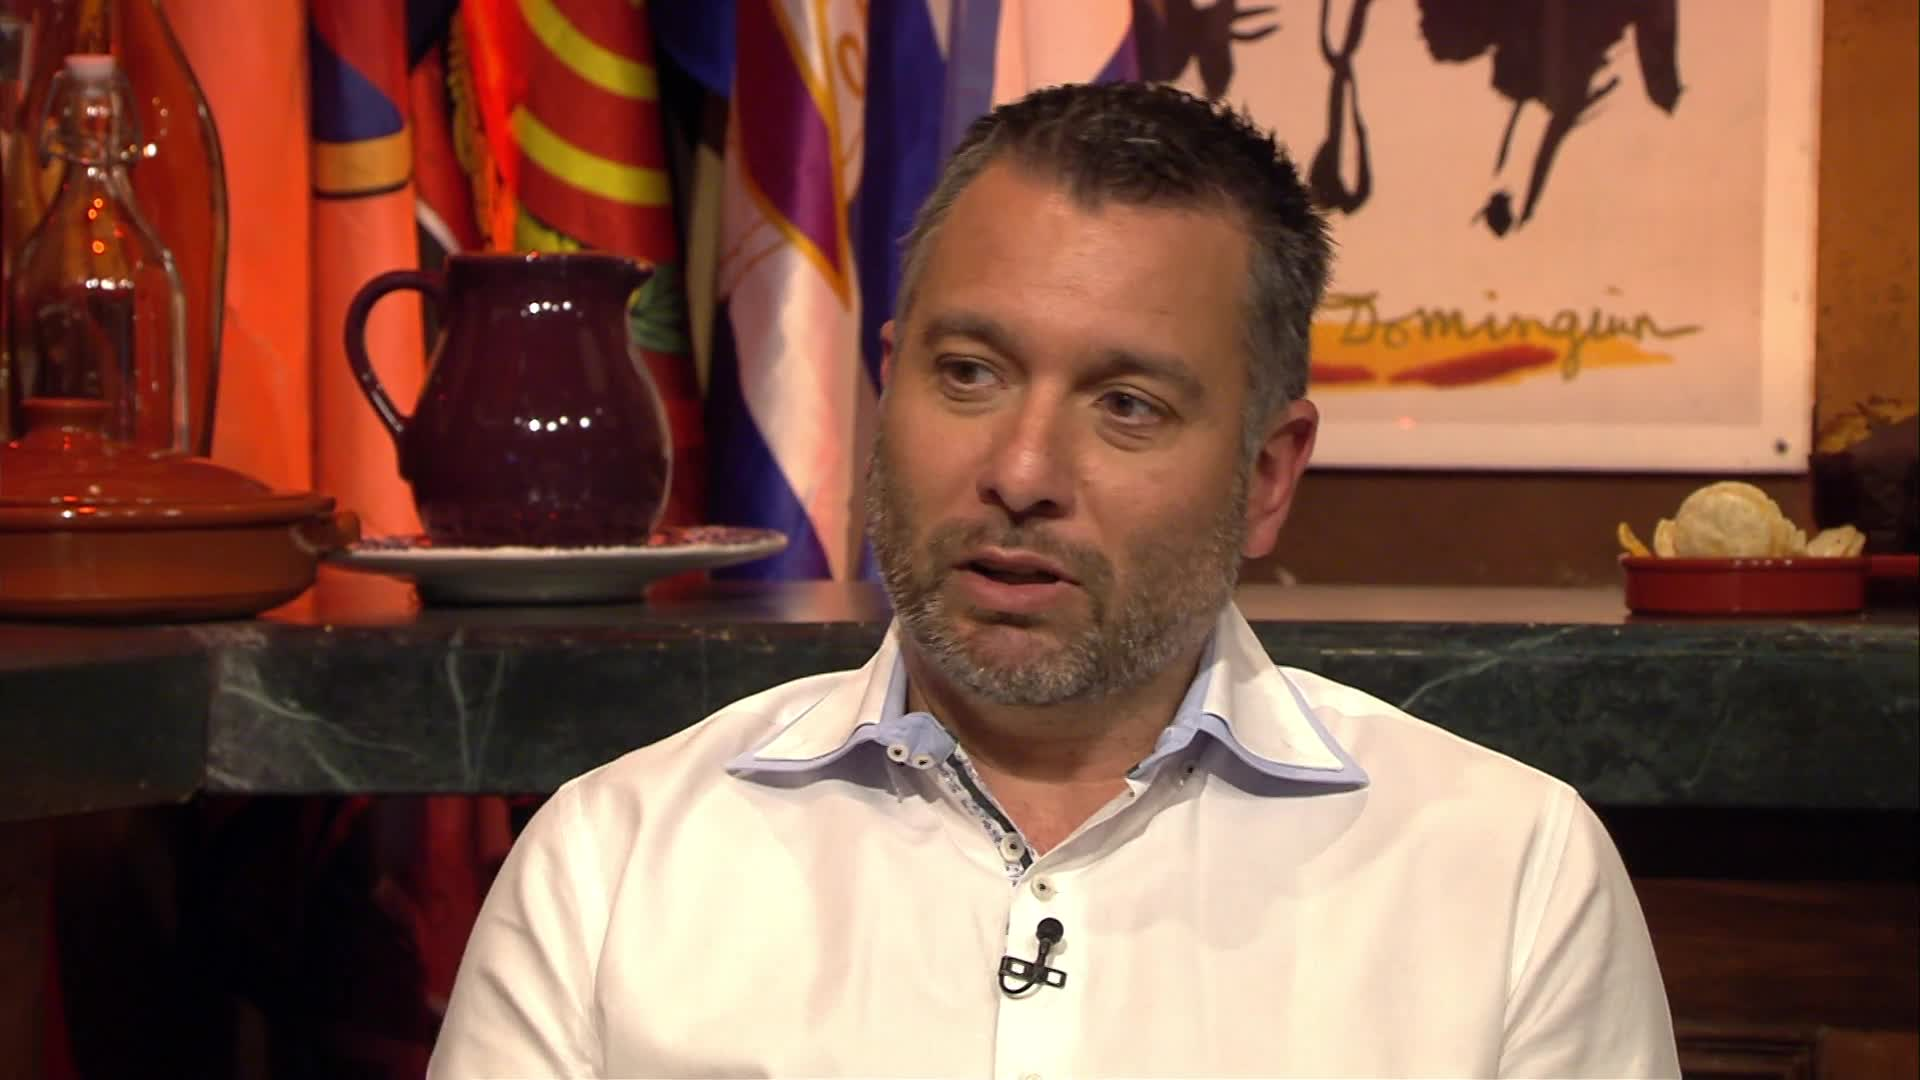 Guillem Balague interviewed Messi about injuries, family and Ronaldo